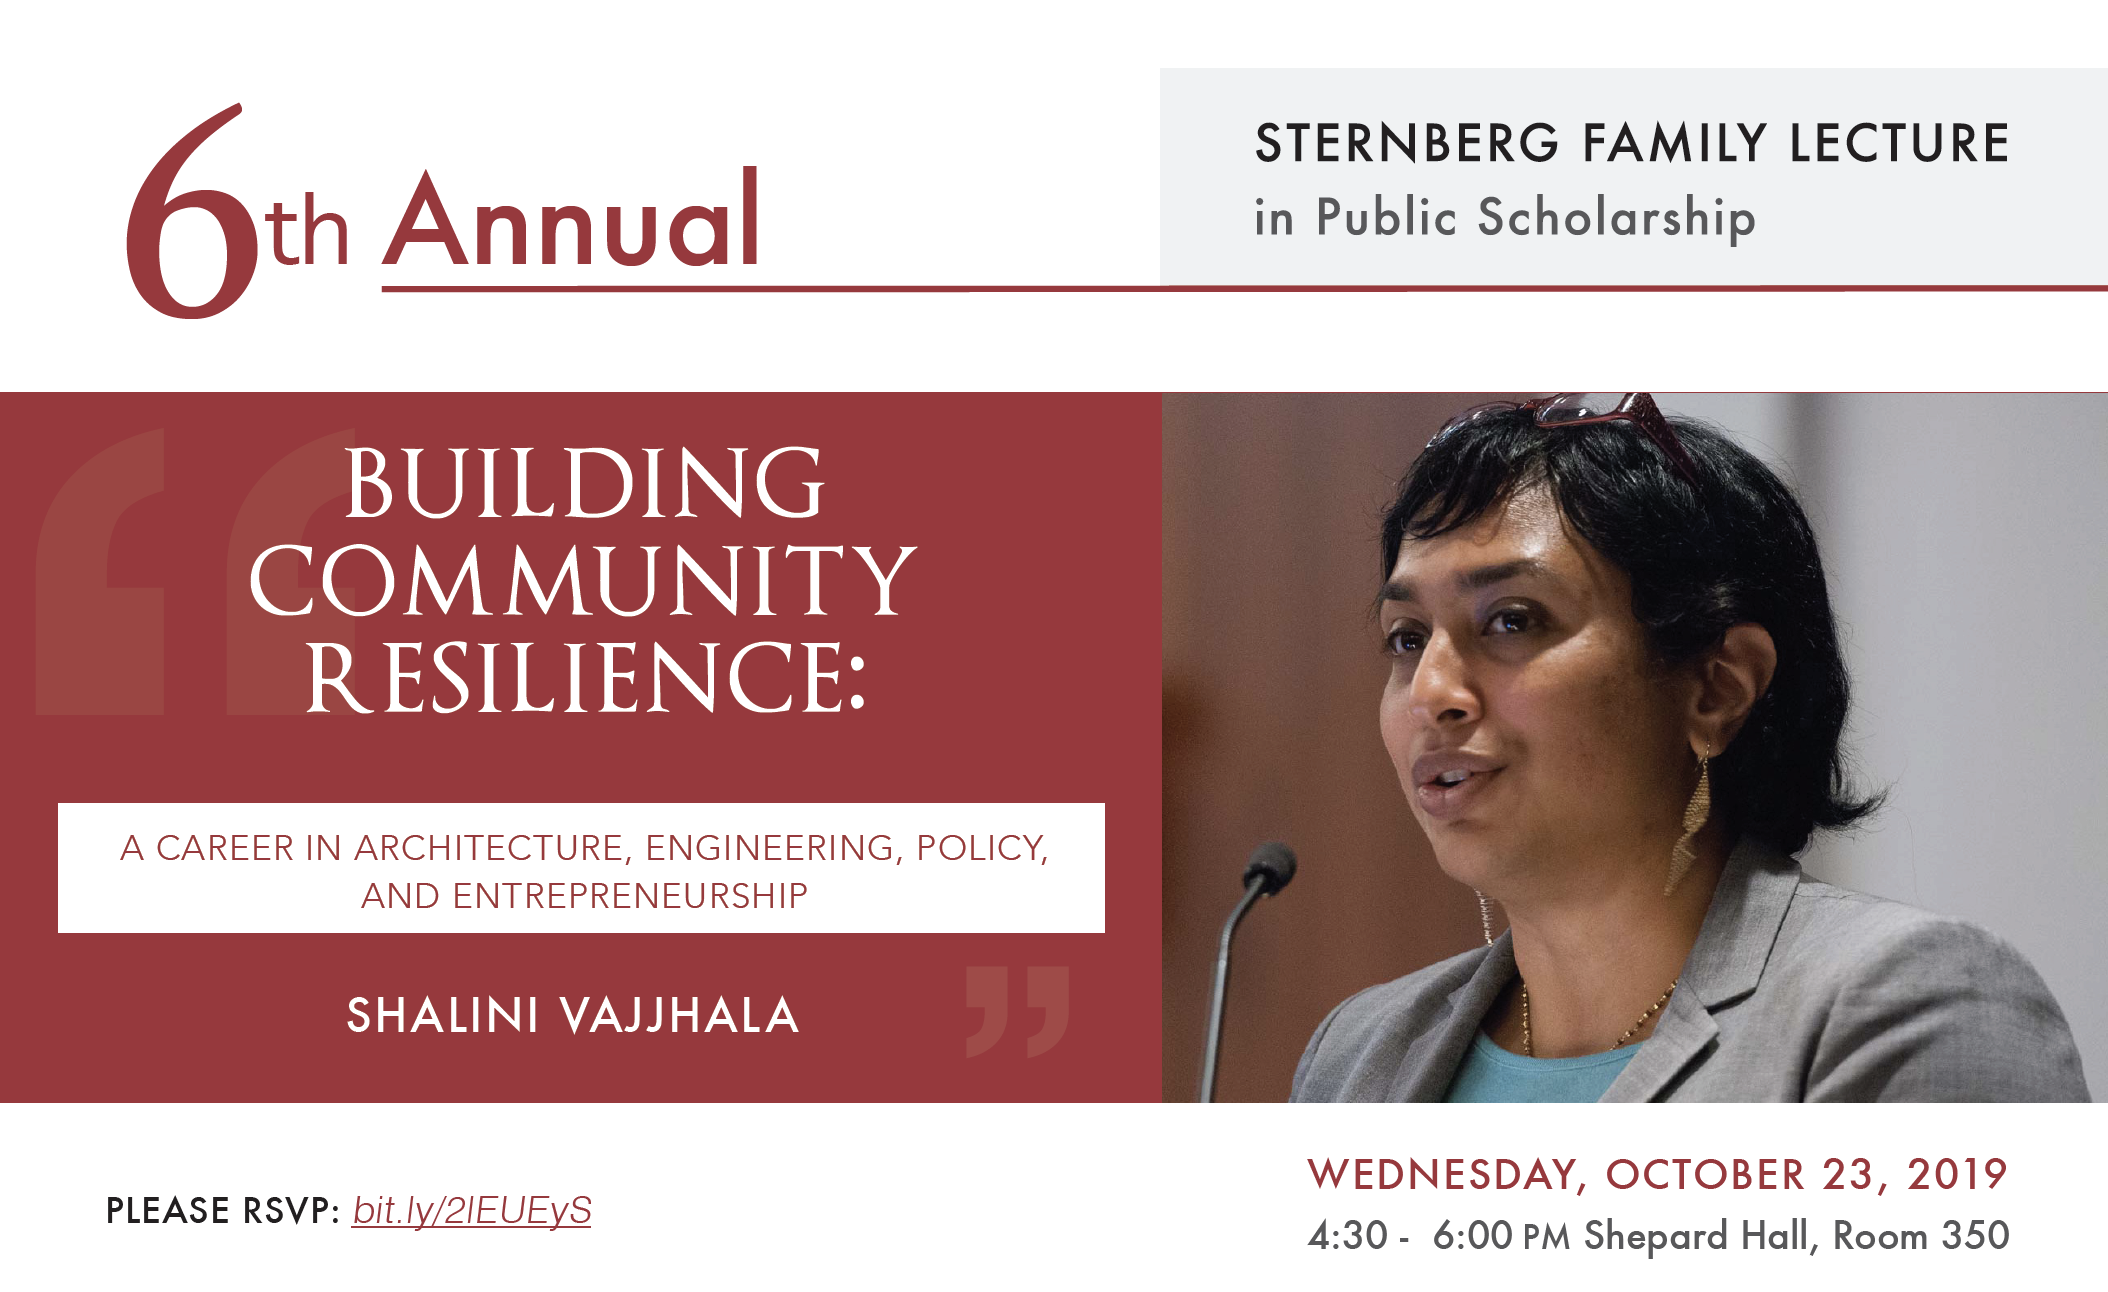 The Colin Powell School Presents the 6th Annual Sternberg Family Lecture in Public Scholarship